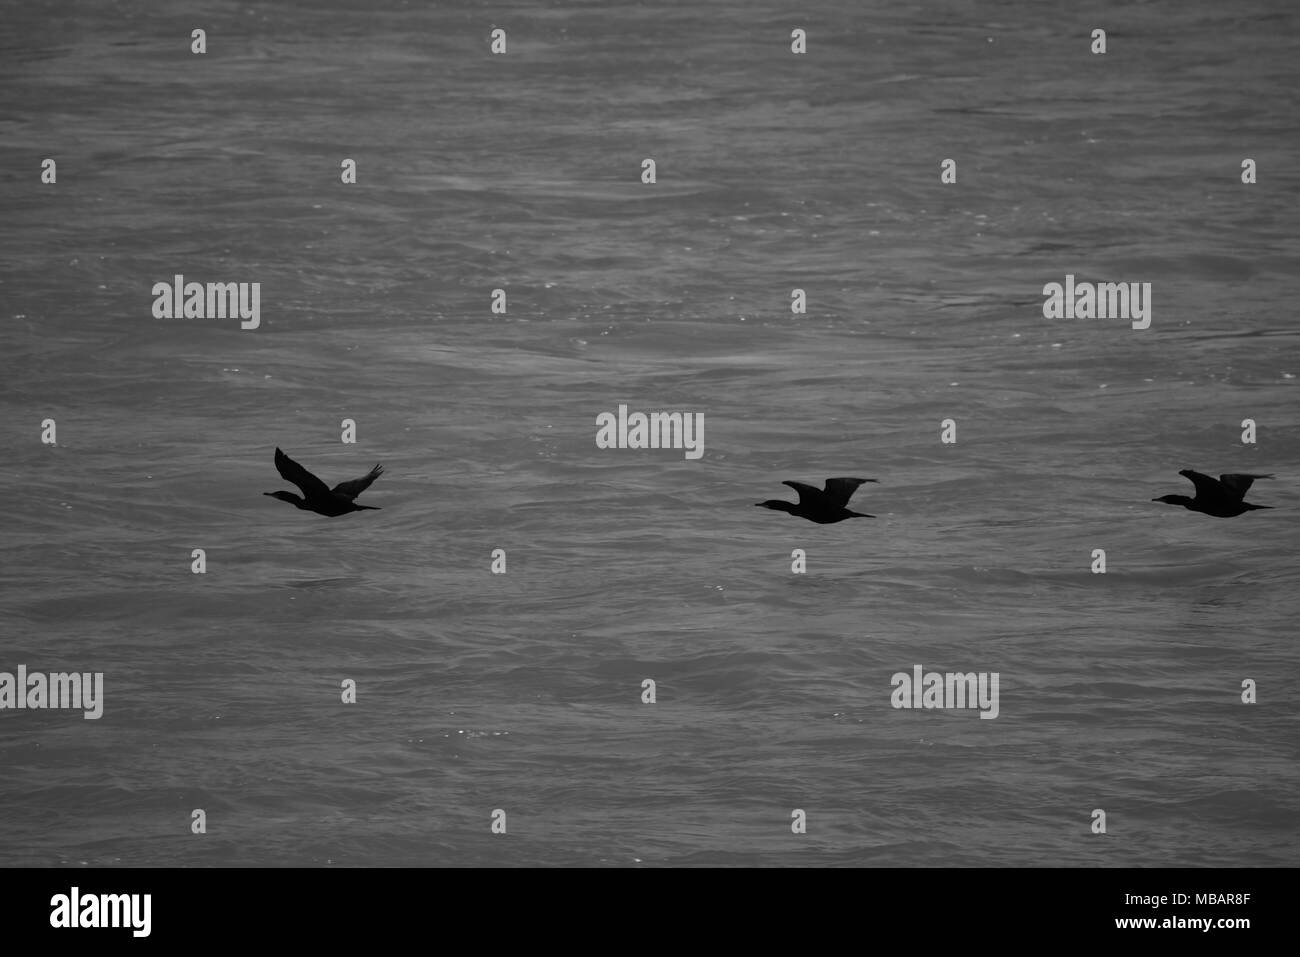 BW of three cormorants flying low over water - Stock Image